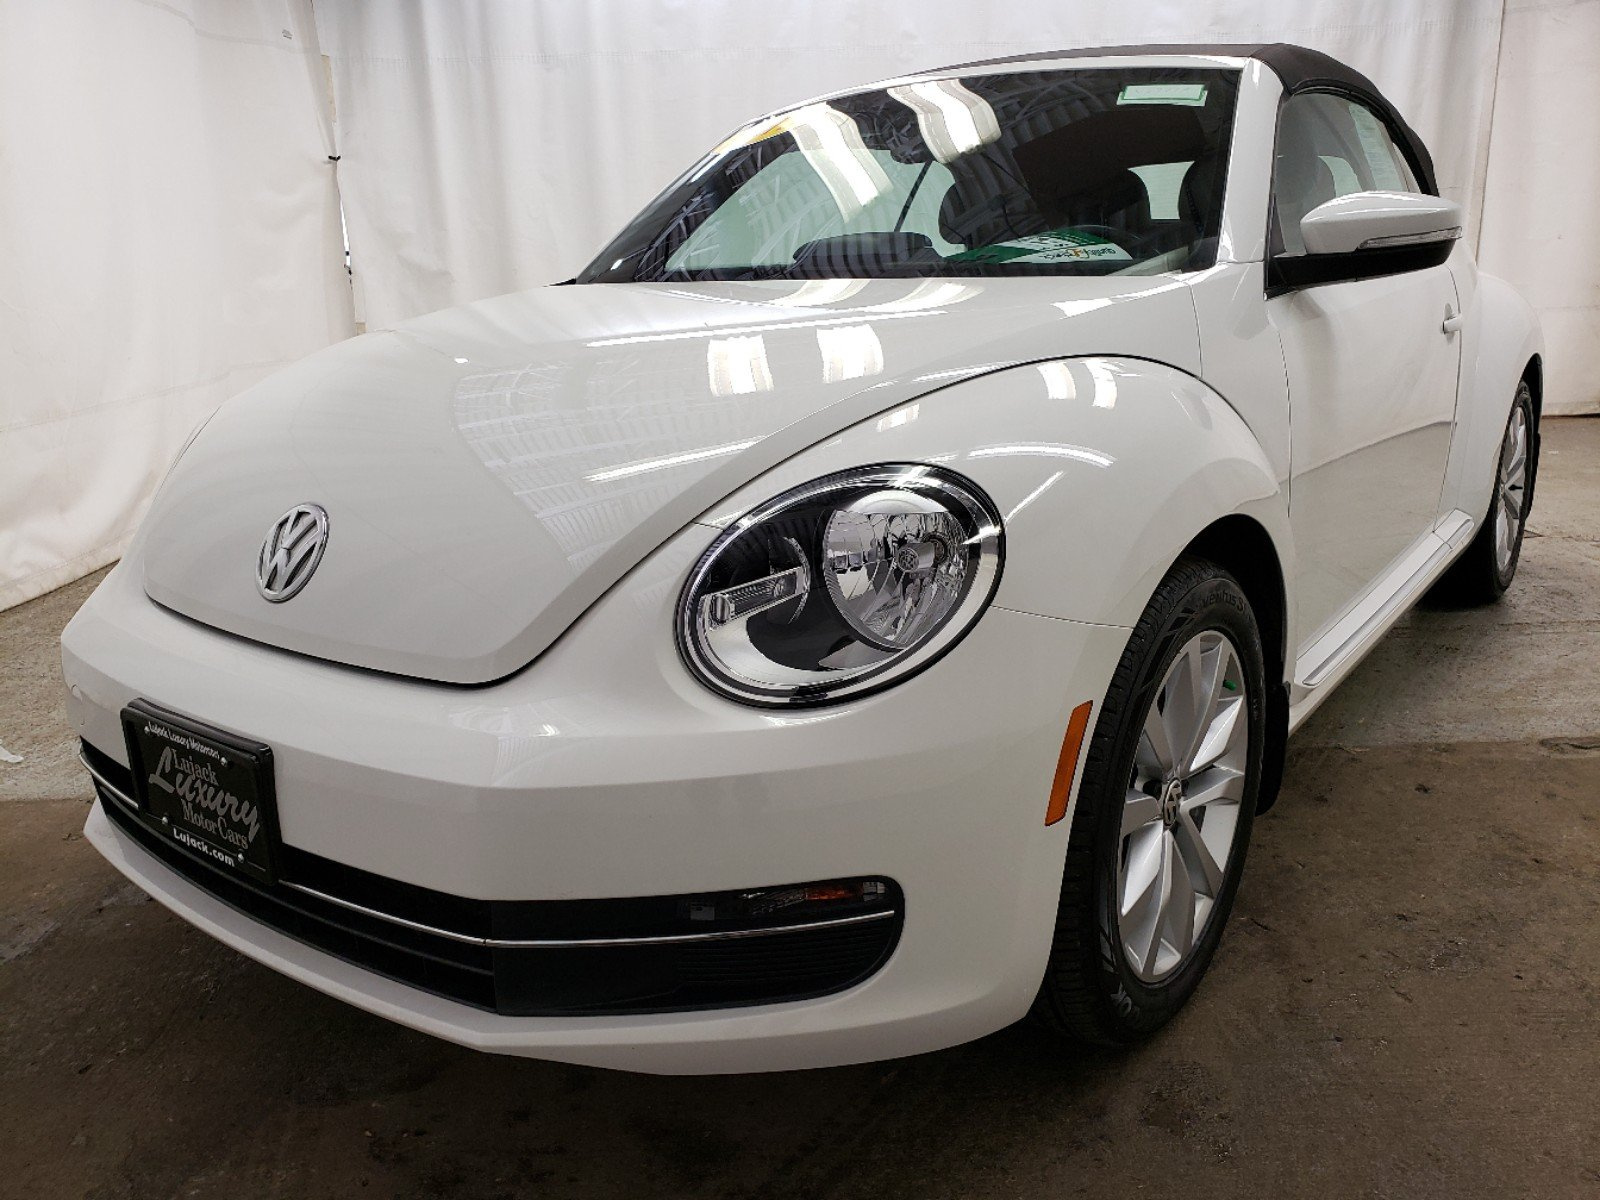 Certified Pre-Owned 2013 Volkswagen Beetle Convertible 2.0 TDI